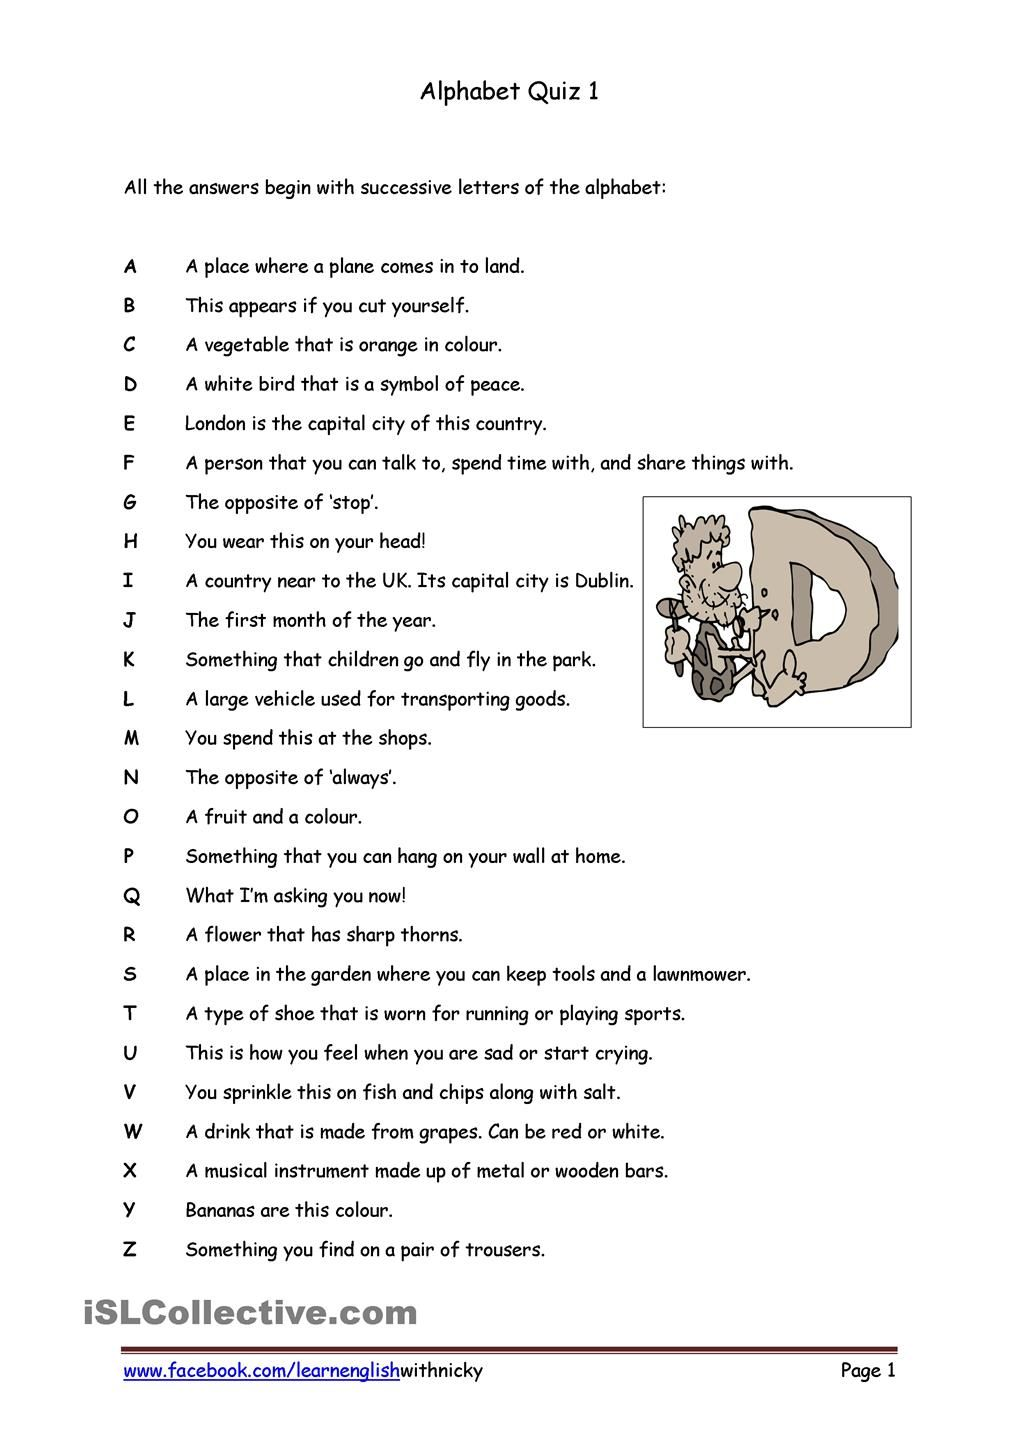 Alphabet Quiz 1 Knowledge quiz, Quiz, Fun quiz